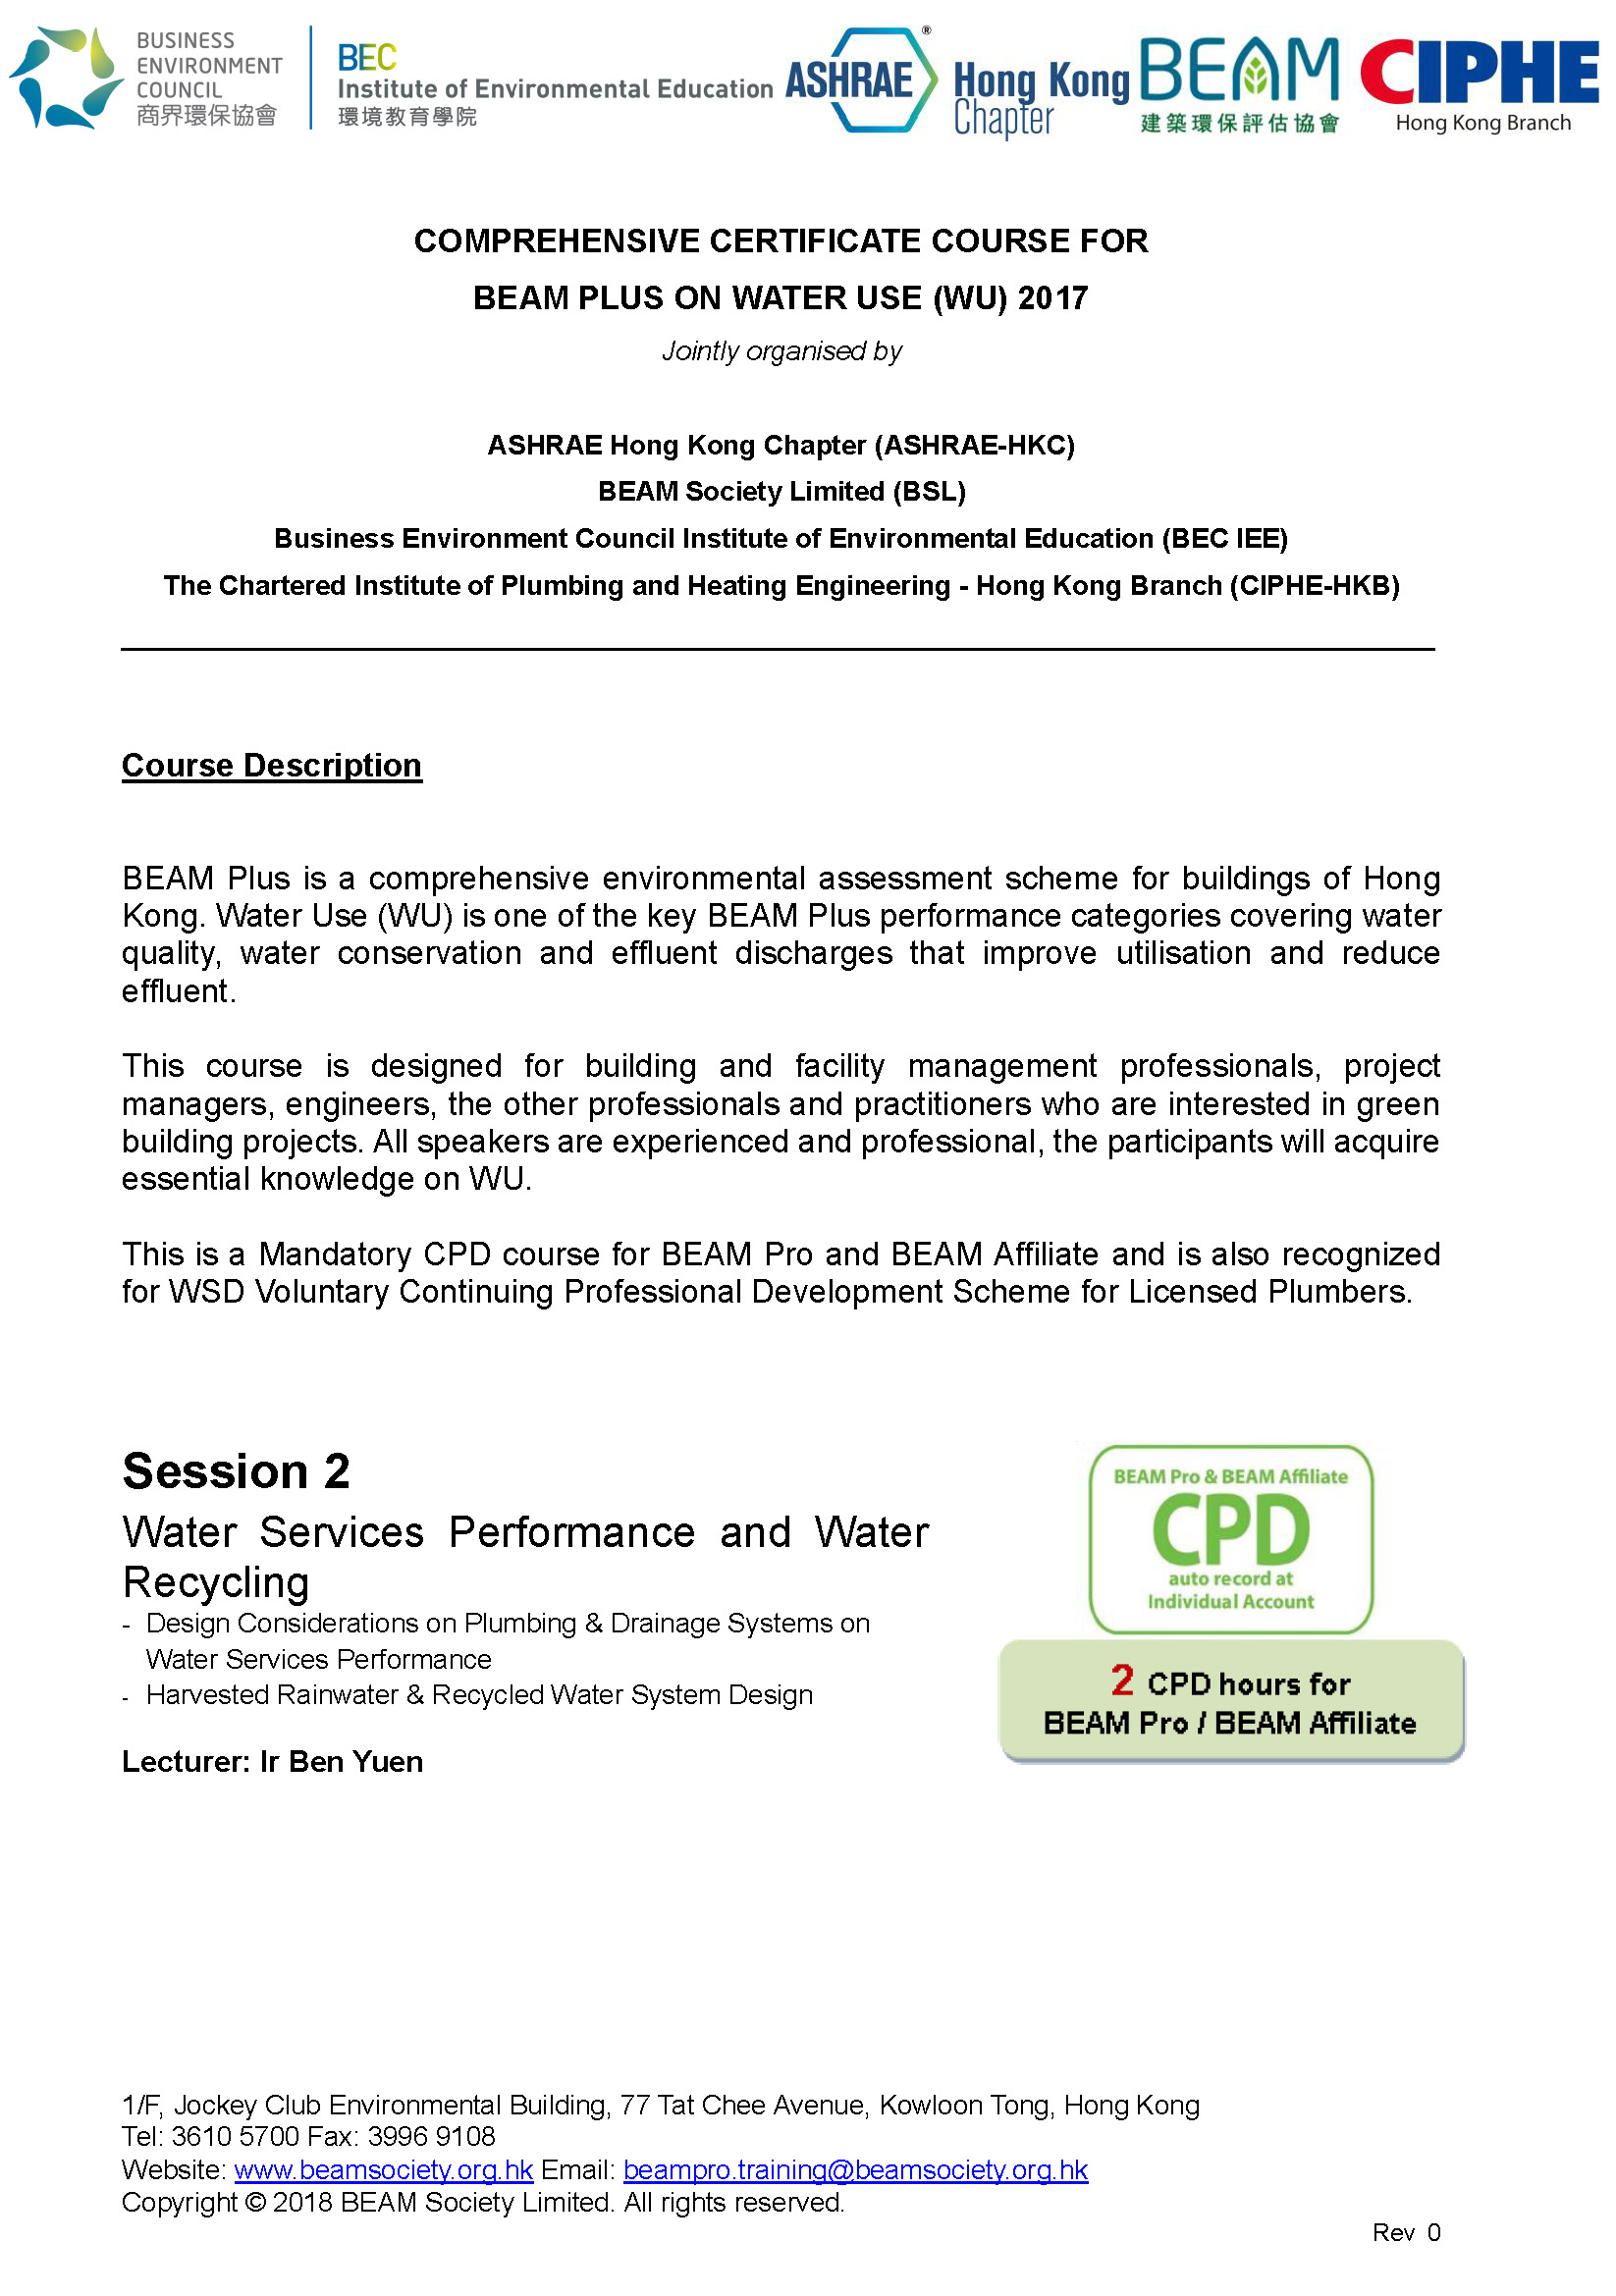 Beam online training portal water services performance and water recycling design considerations on plumbing drainage systems on water services performance malvernweather Image collections